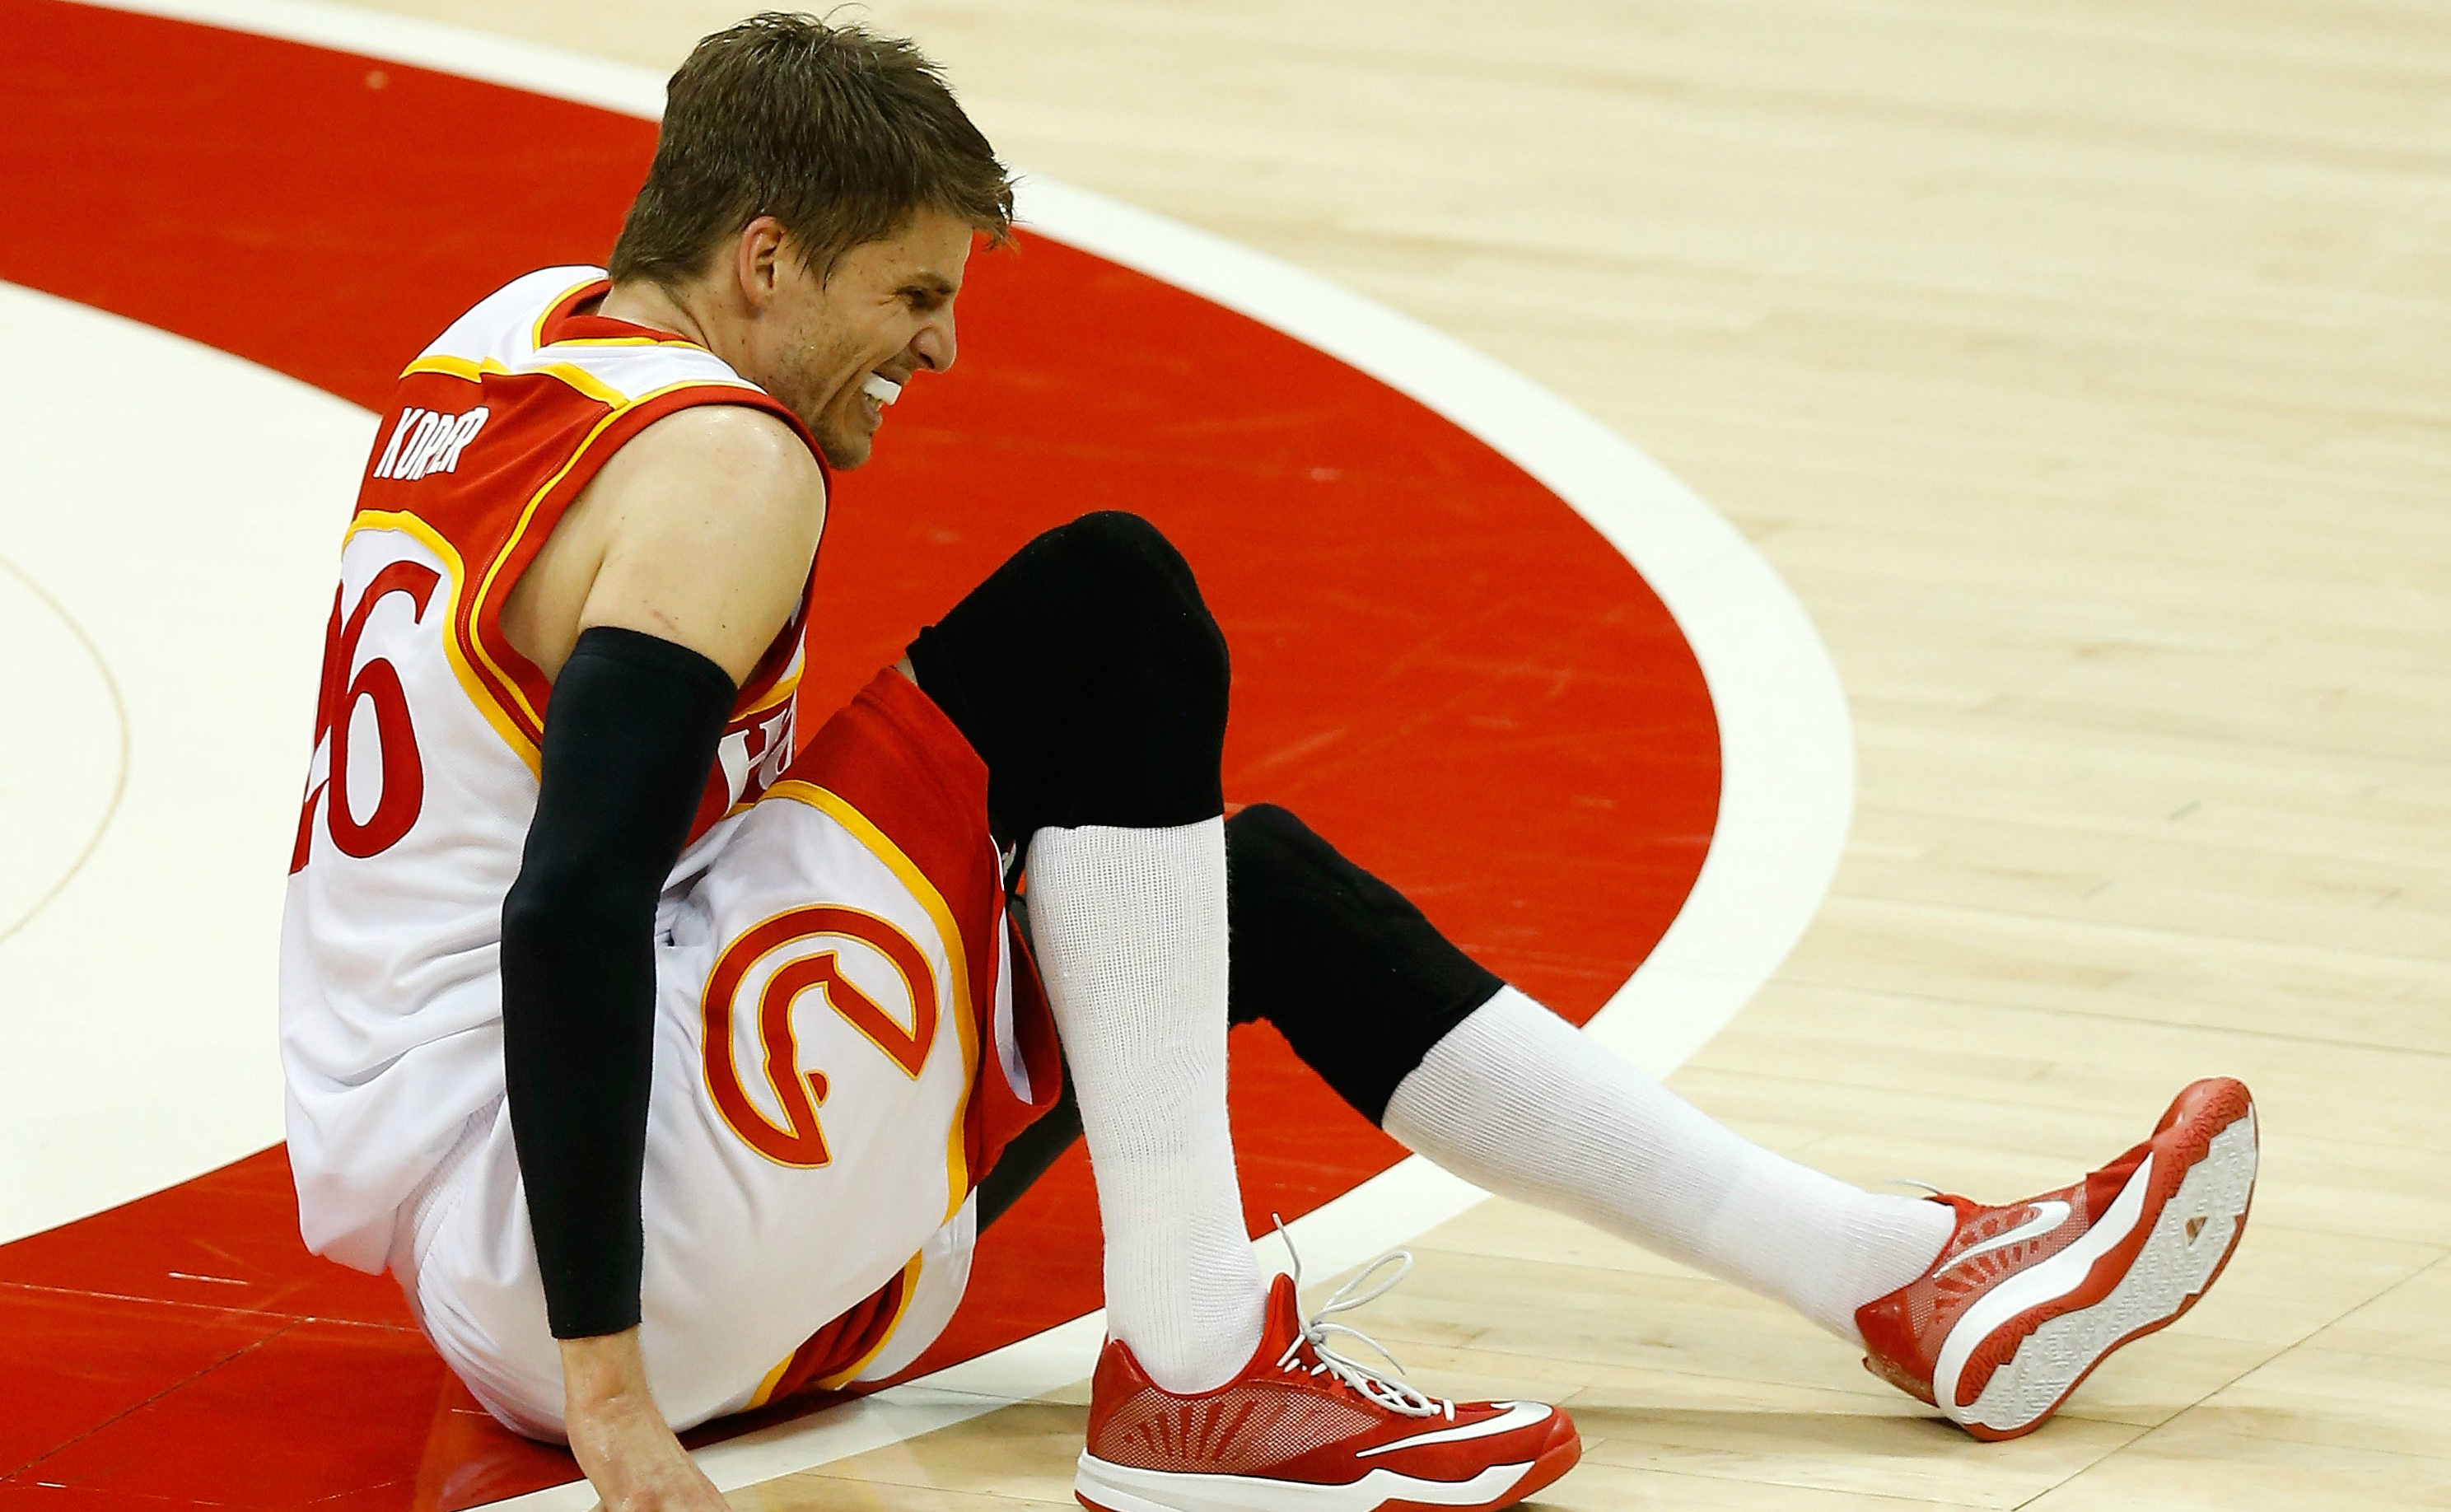 Reports: Hawks guard Kyle Korver to have ankle surgery Wednesday